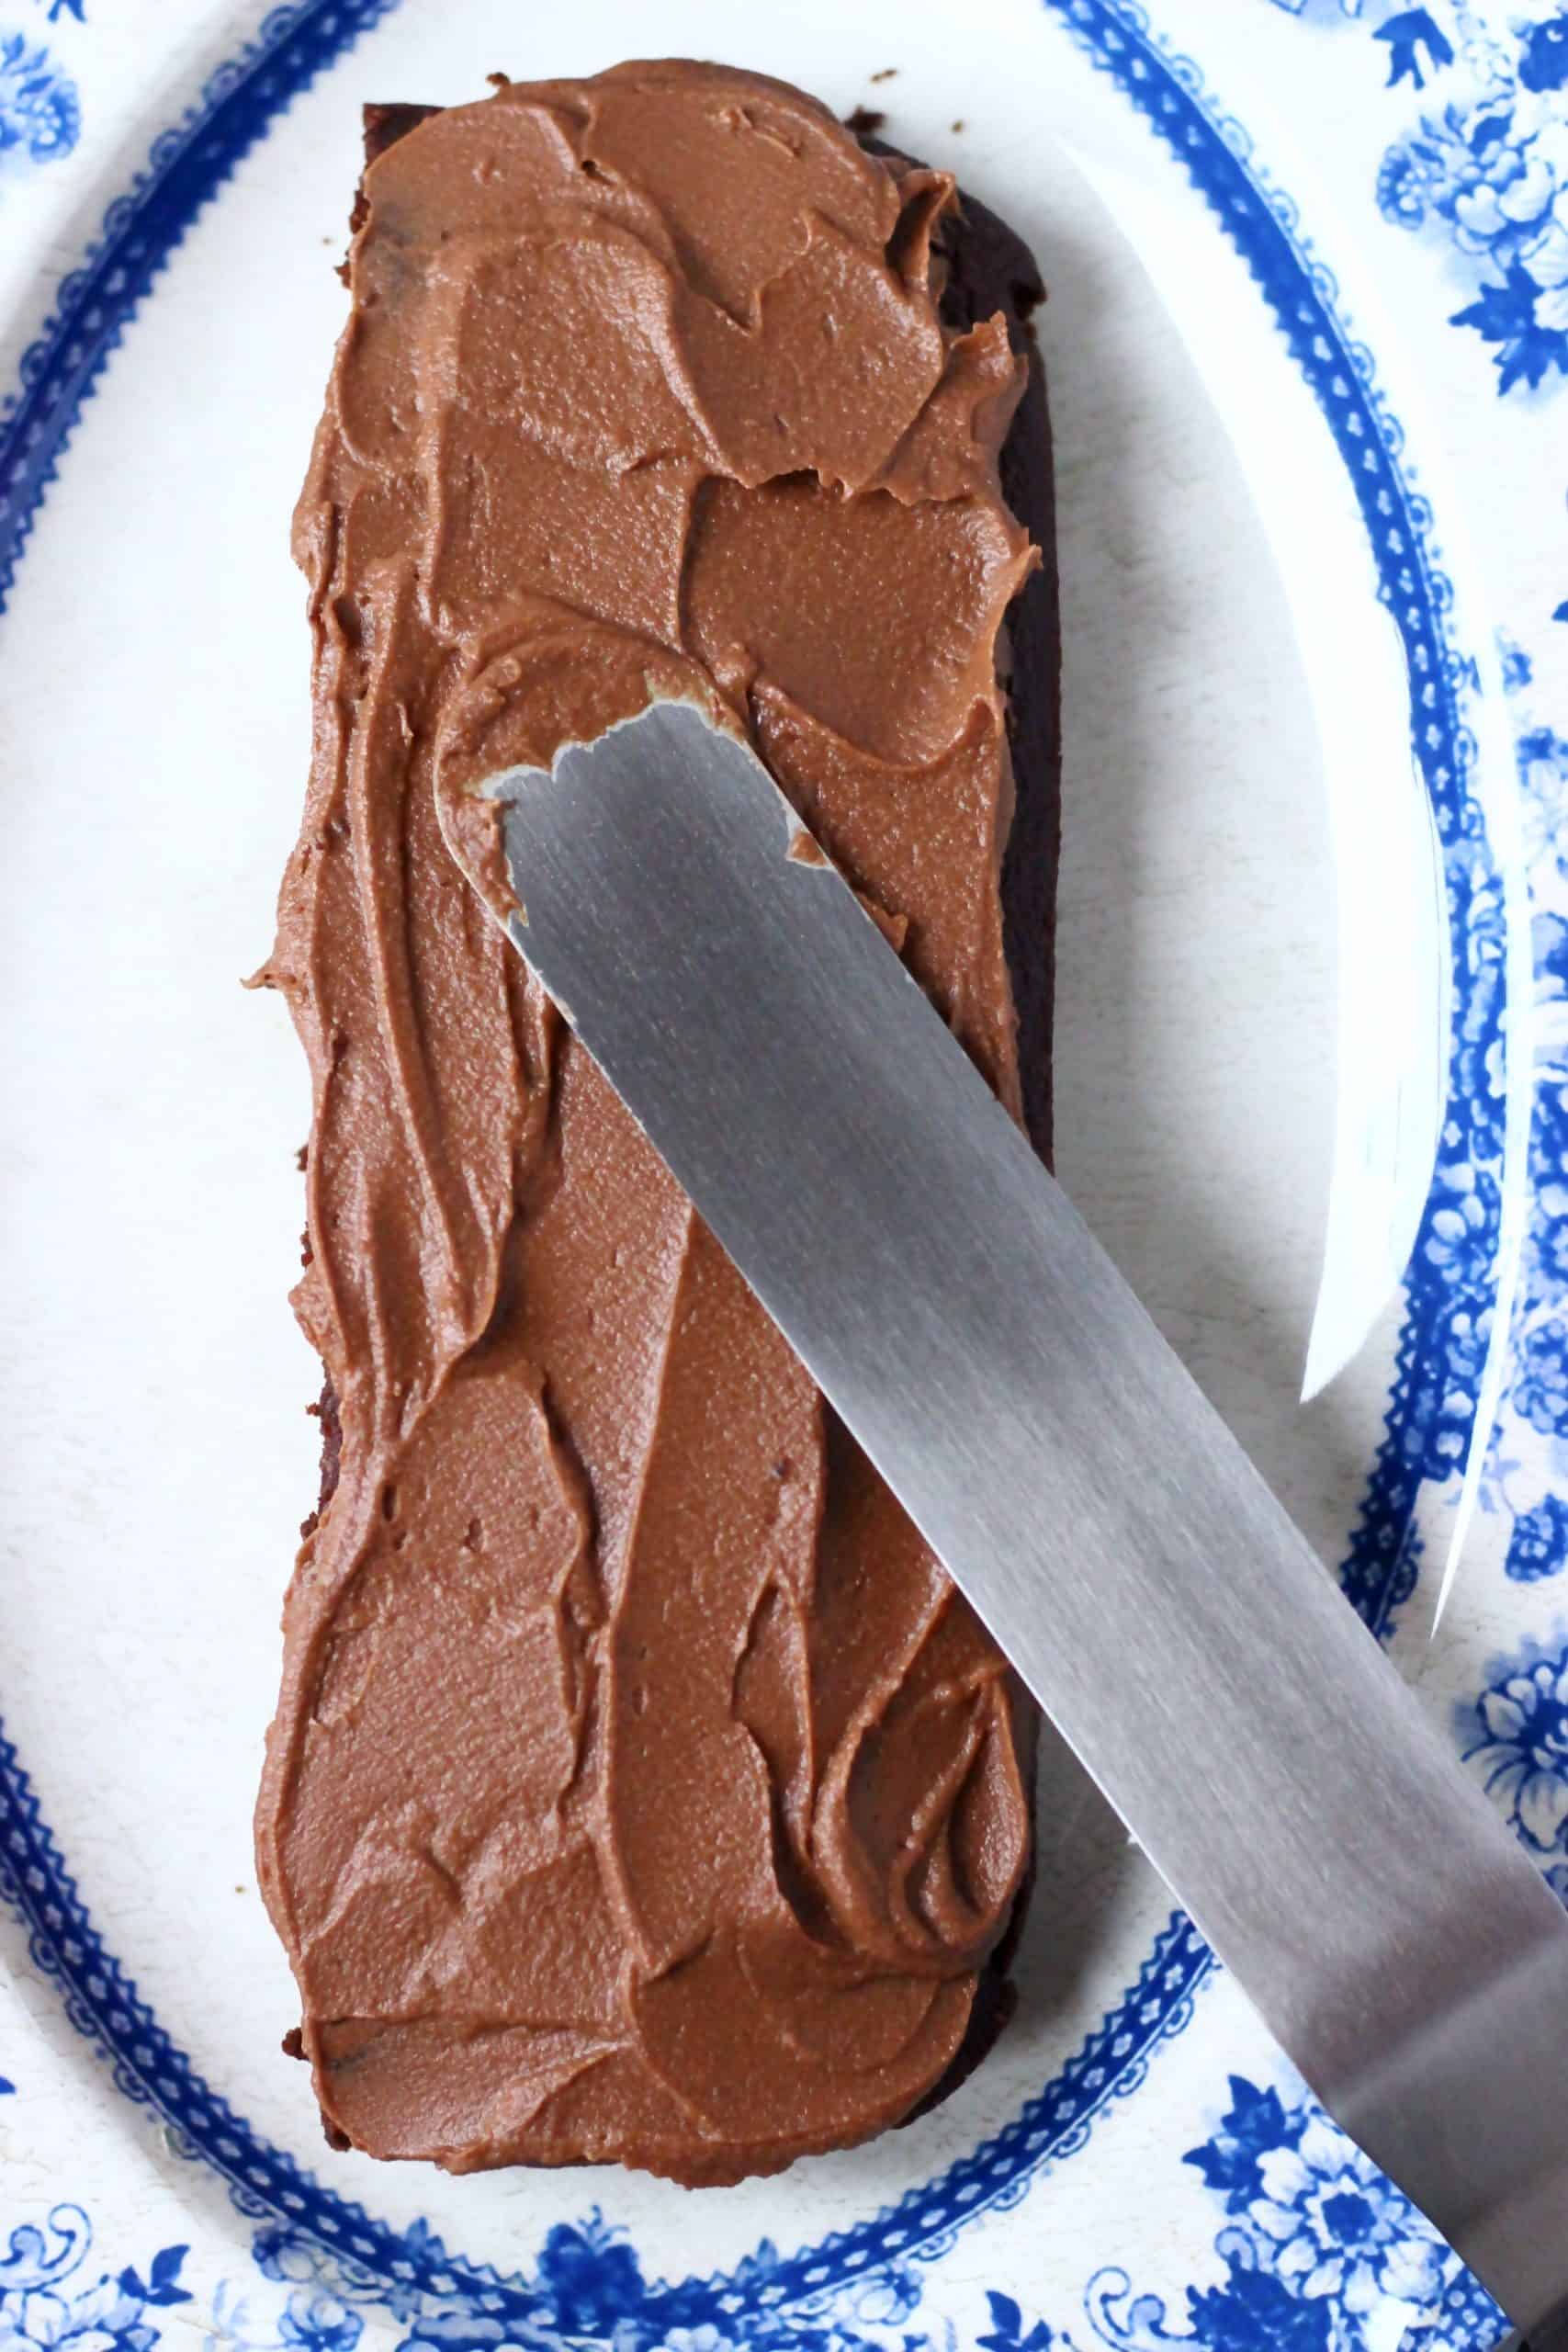 A rectangle of vegan chocolate cake with a palette knife spreading chocolate buttercream on top